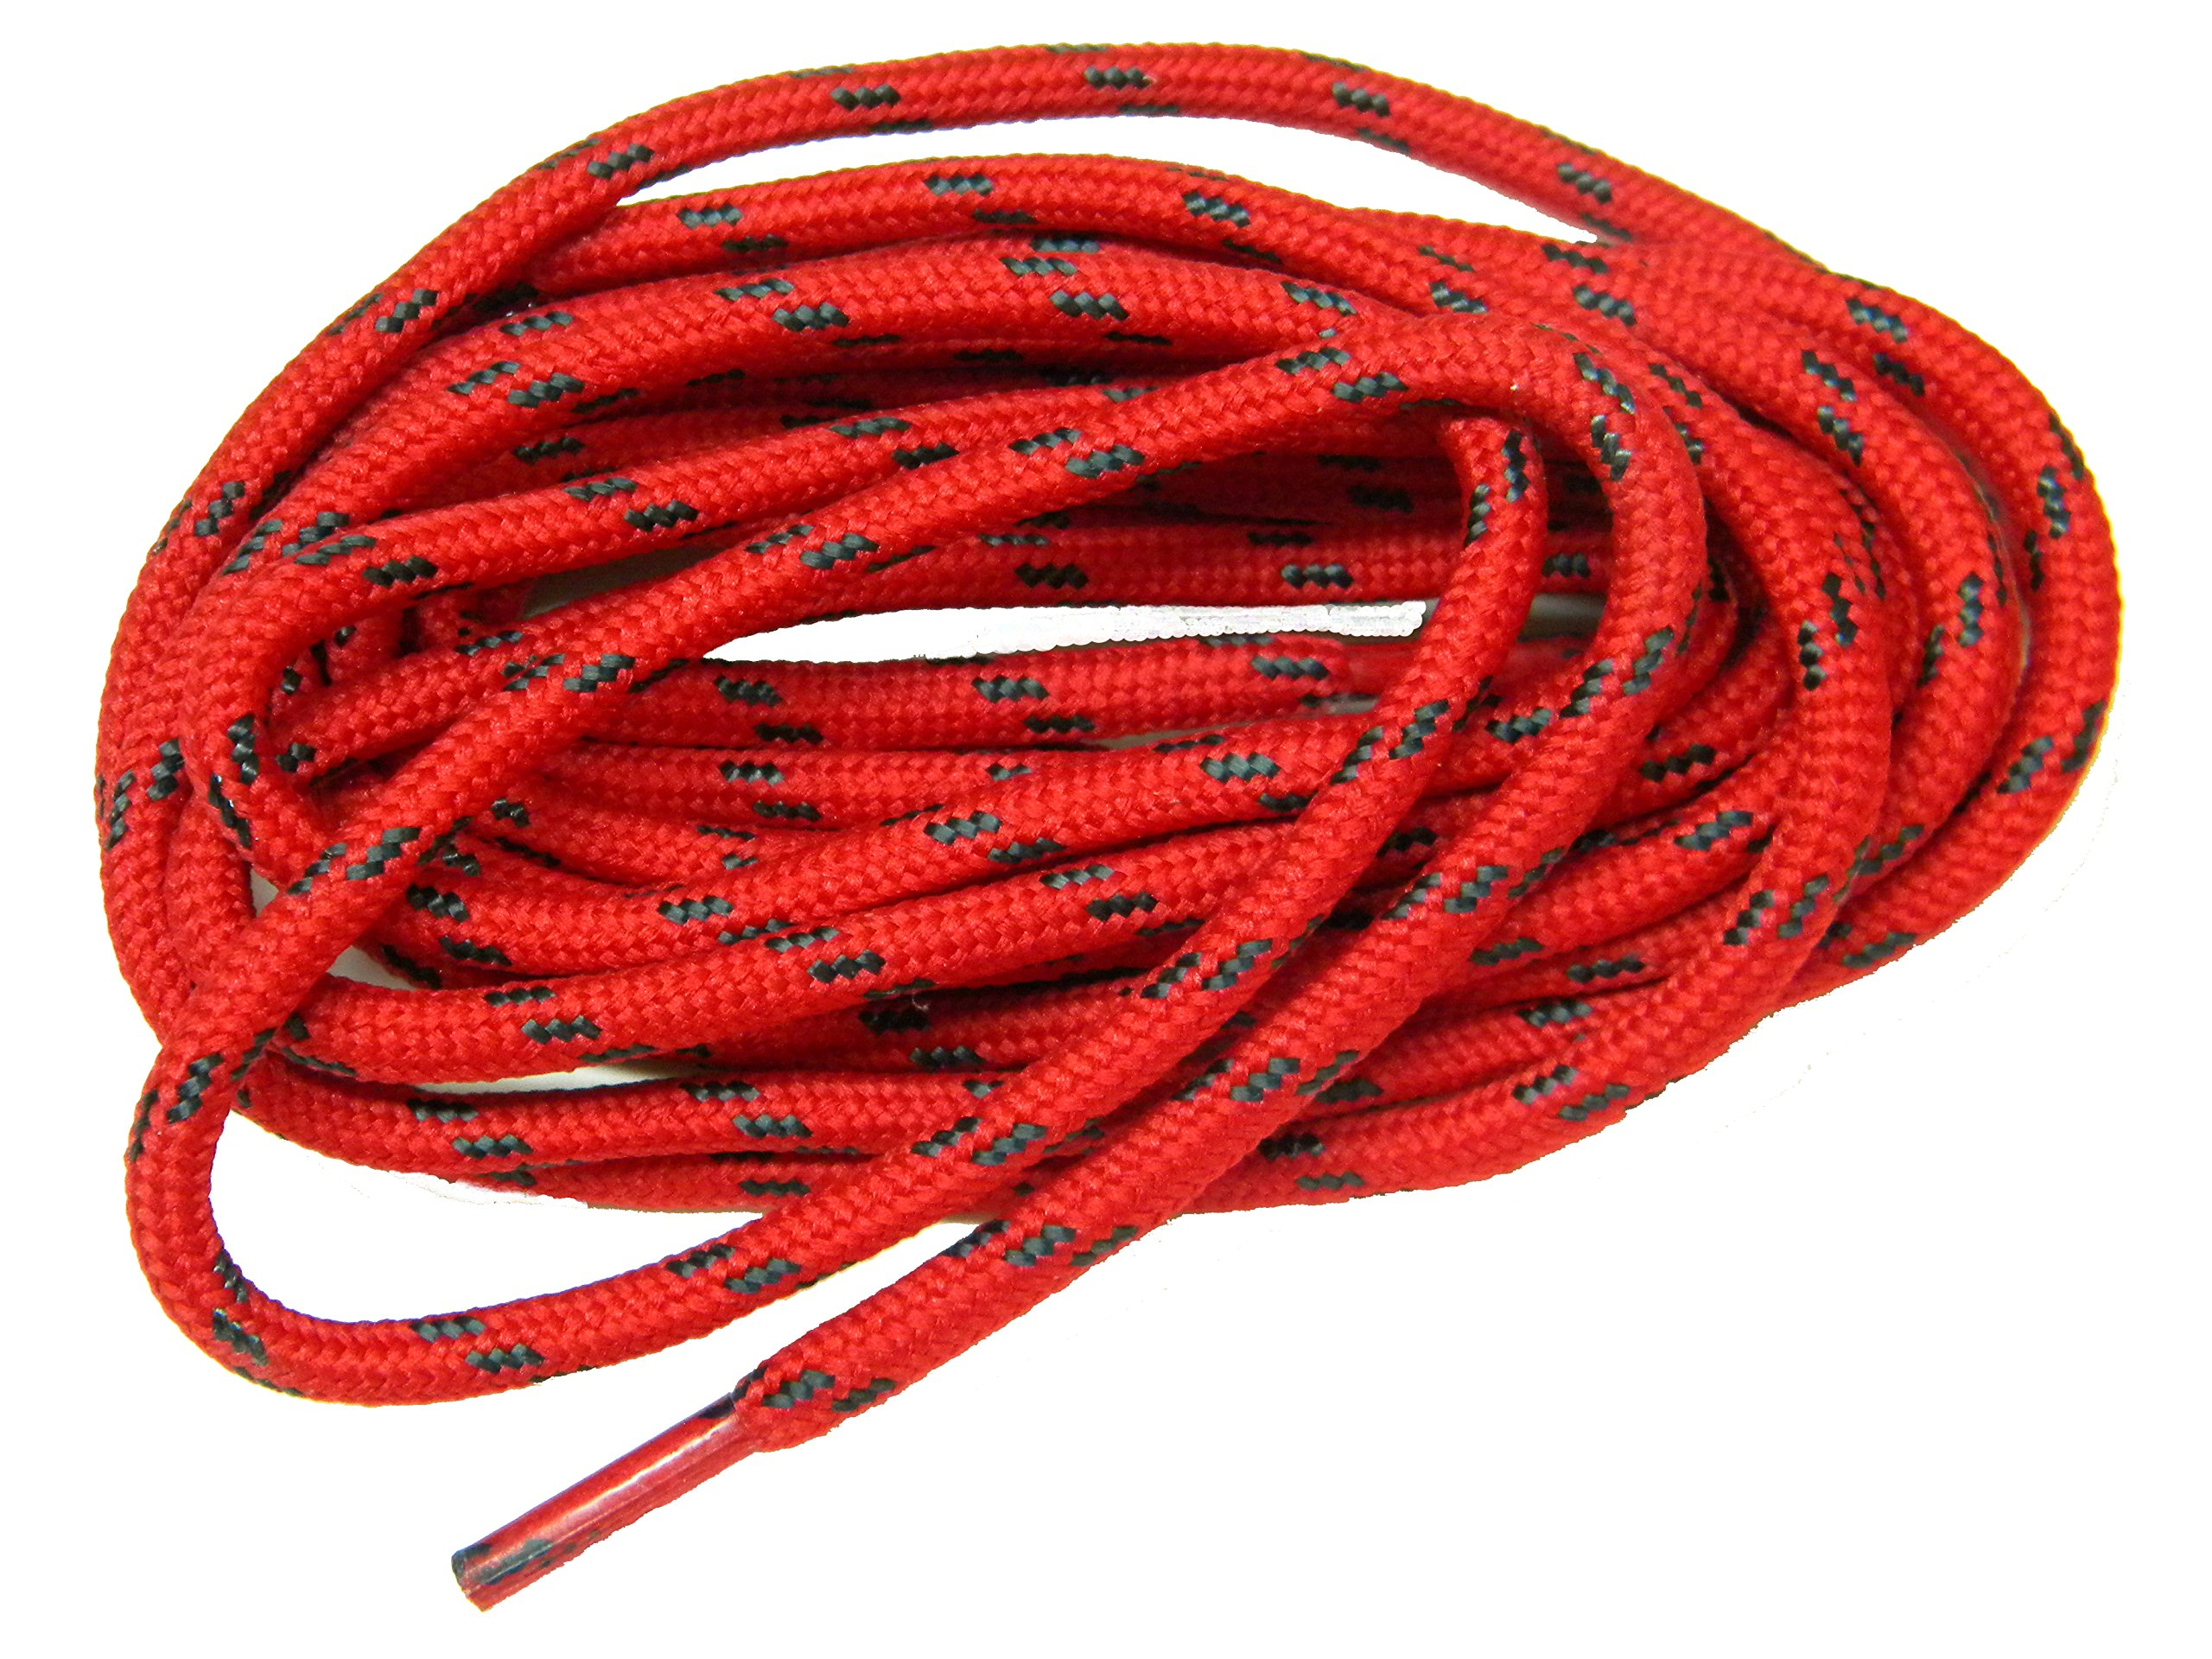 63 RED w/ BLACK Kevlar (R) proTOUGH(TM) Boot Shoelaces 2 pair pack (63 inch 160 cm)